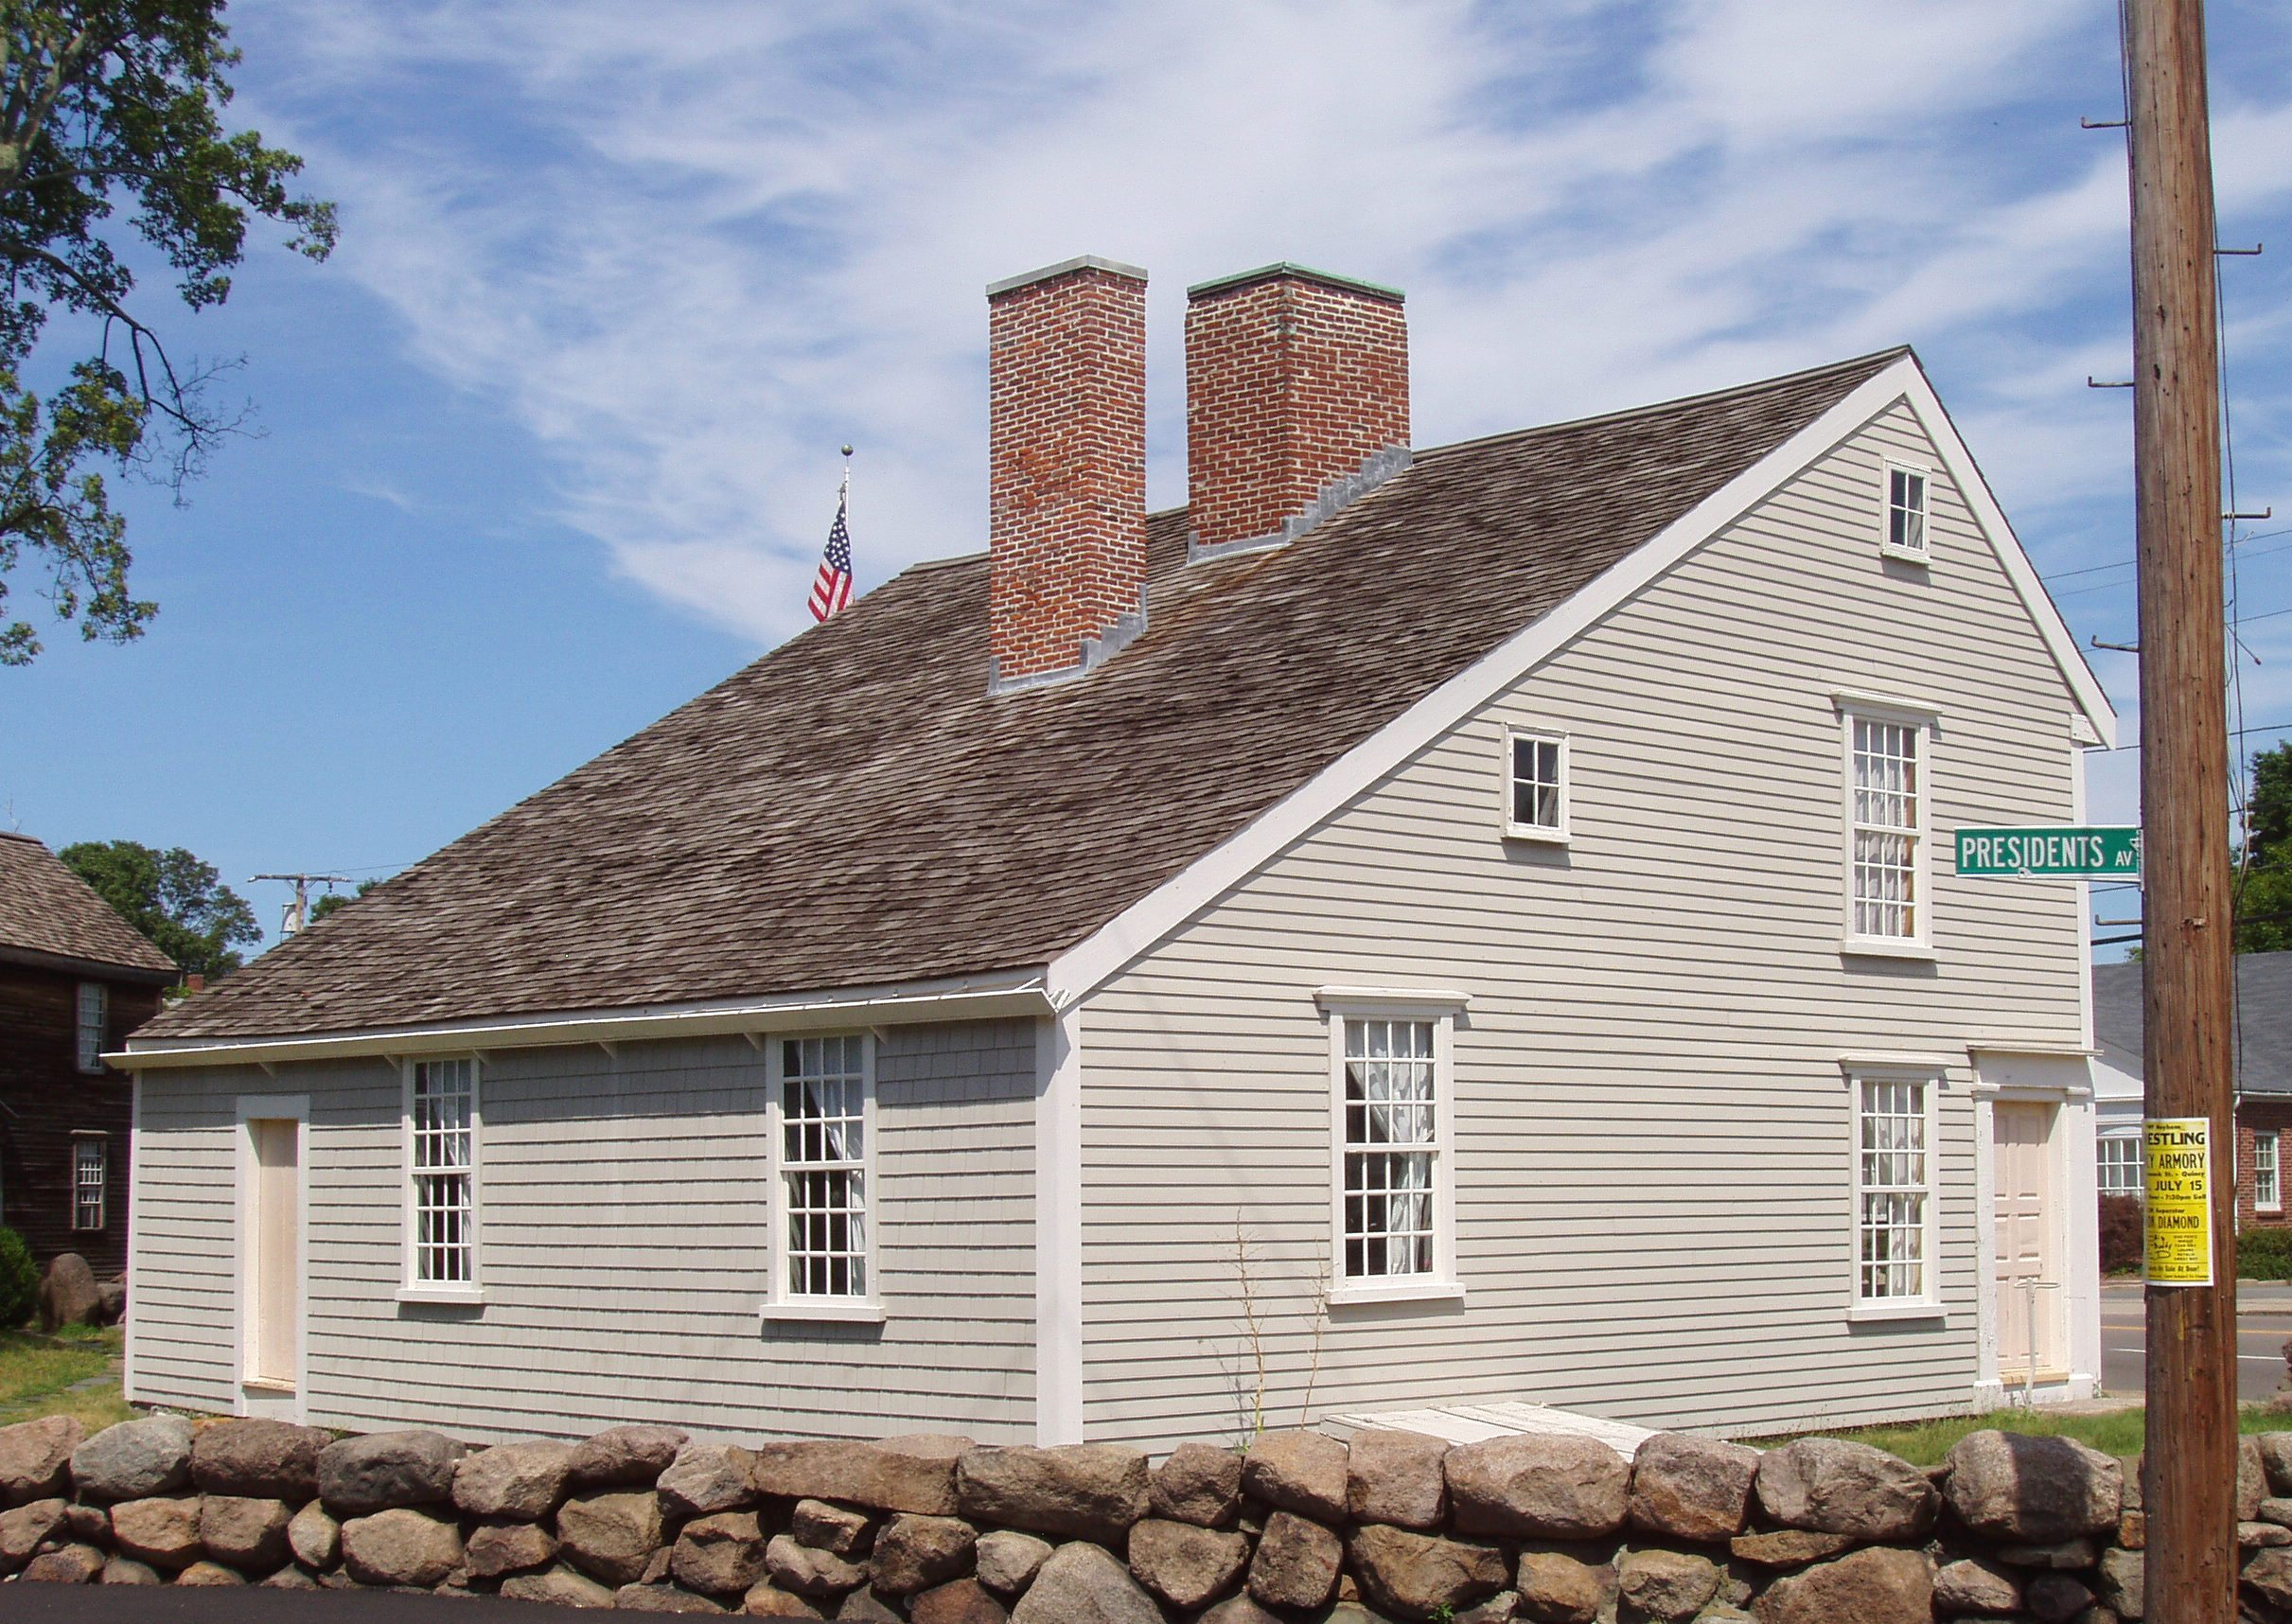 John Quincy Adams - the sixth President of the United states birthplace.